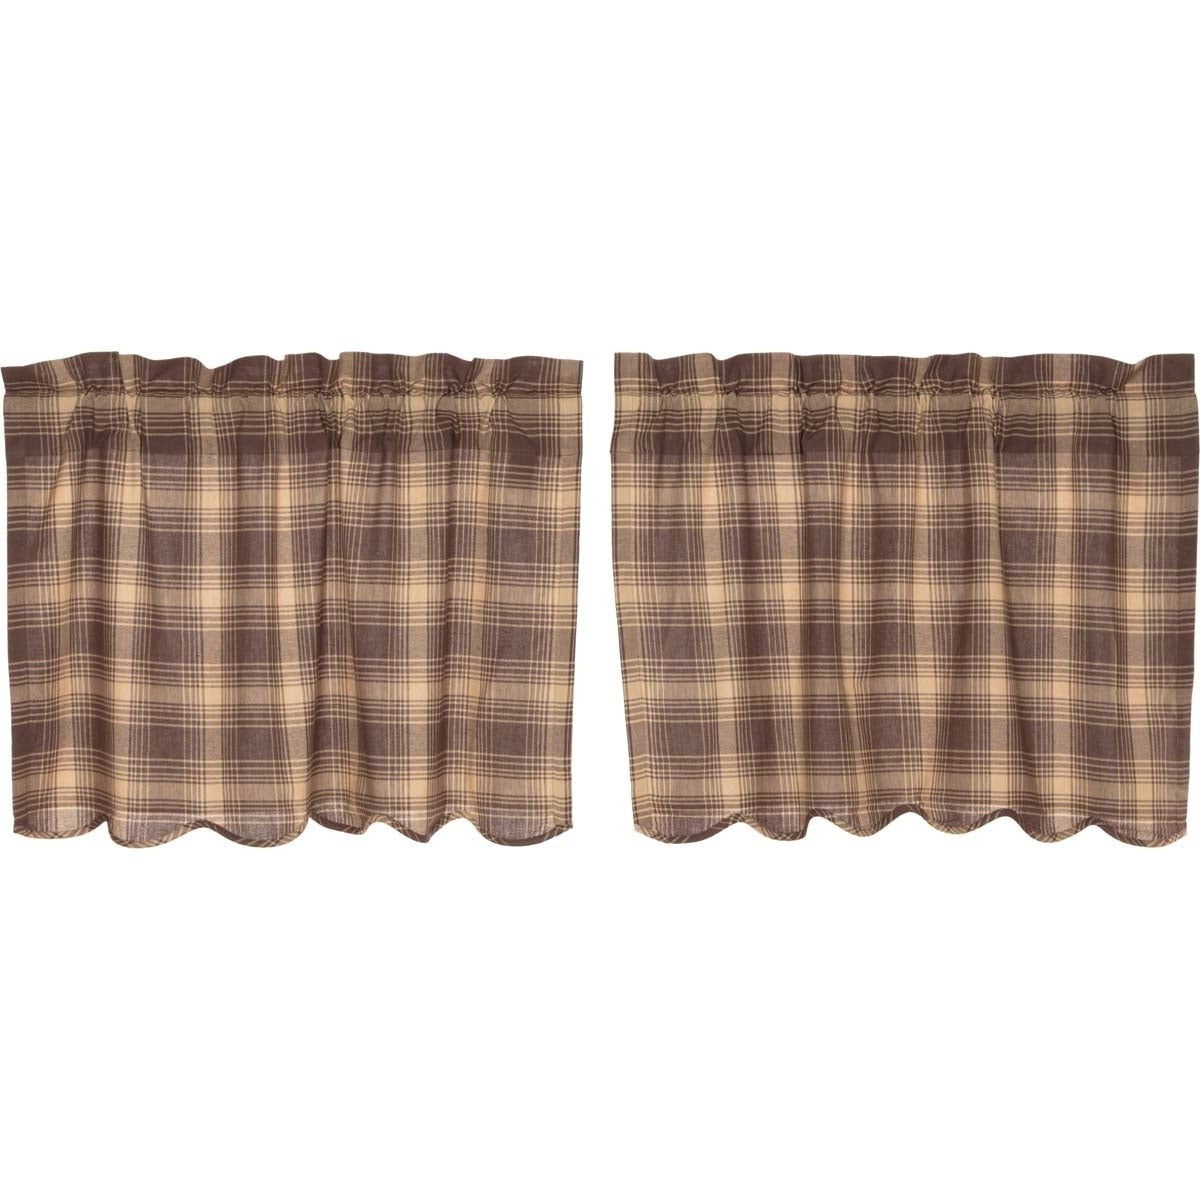 TARTAN RED PLAID Swag Set Lined Country Plaid Cotton Rustic Cabin Lodge VHC